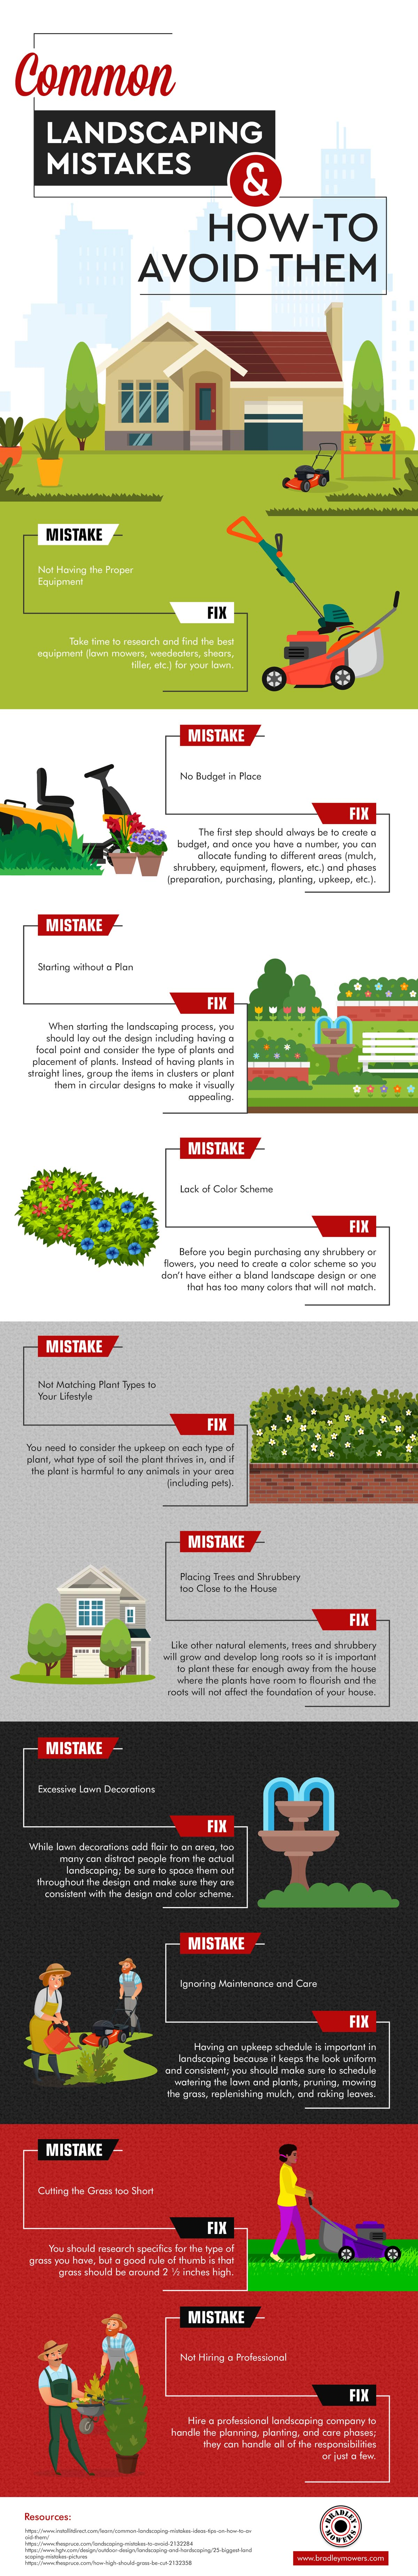 Common Landscaping Mistakes and How-To Avoid Them